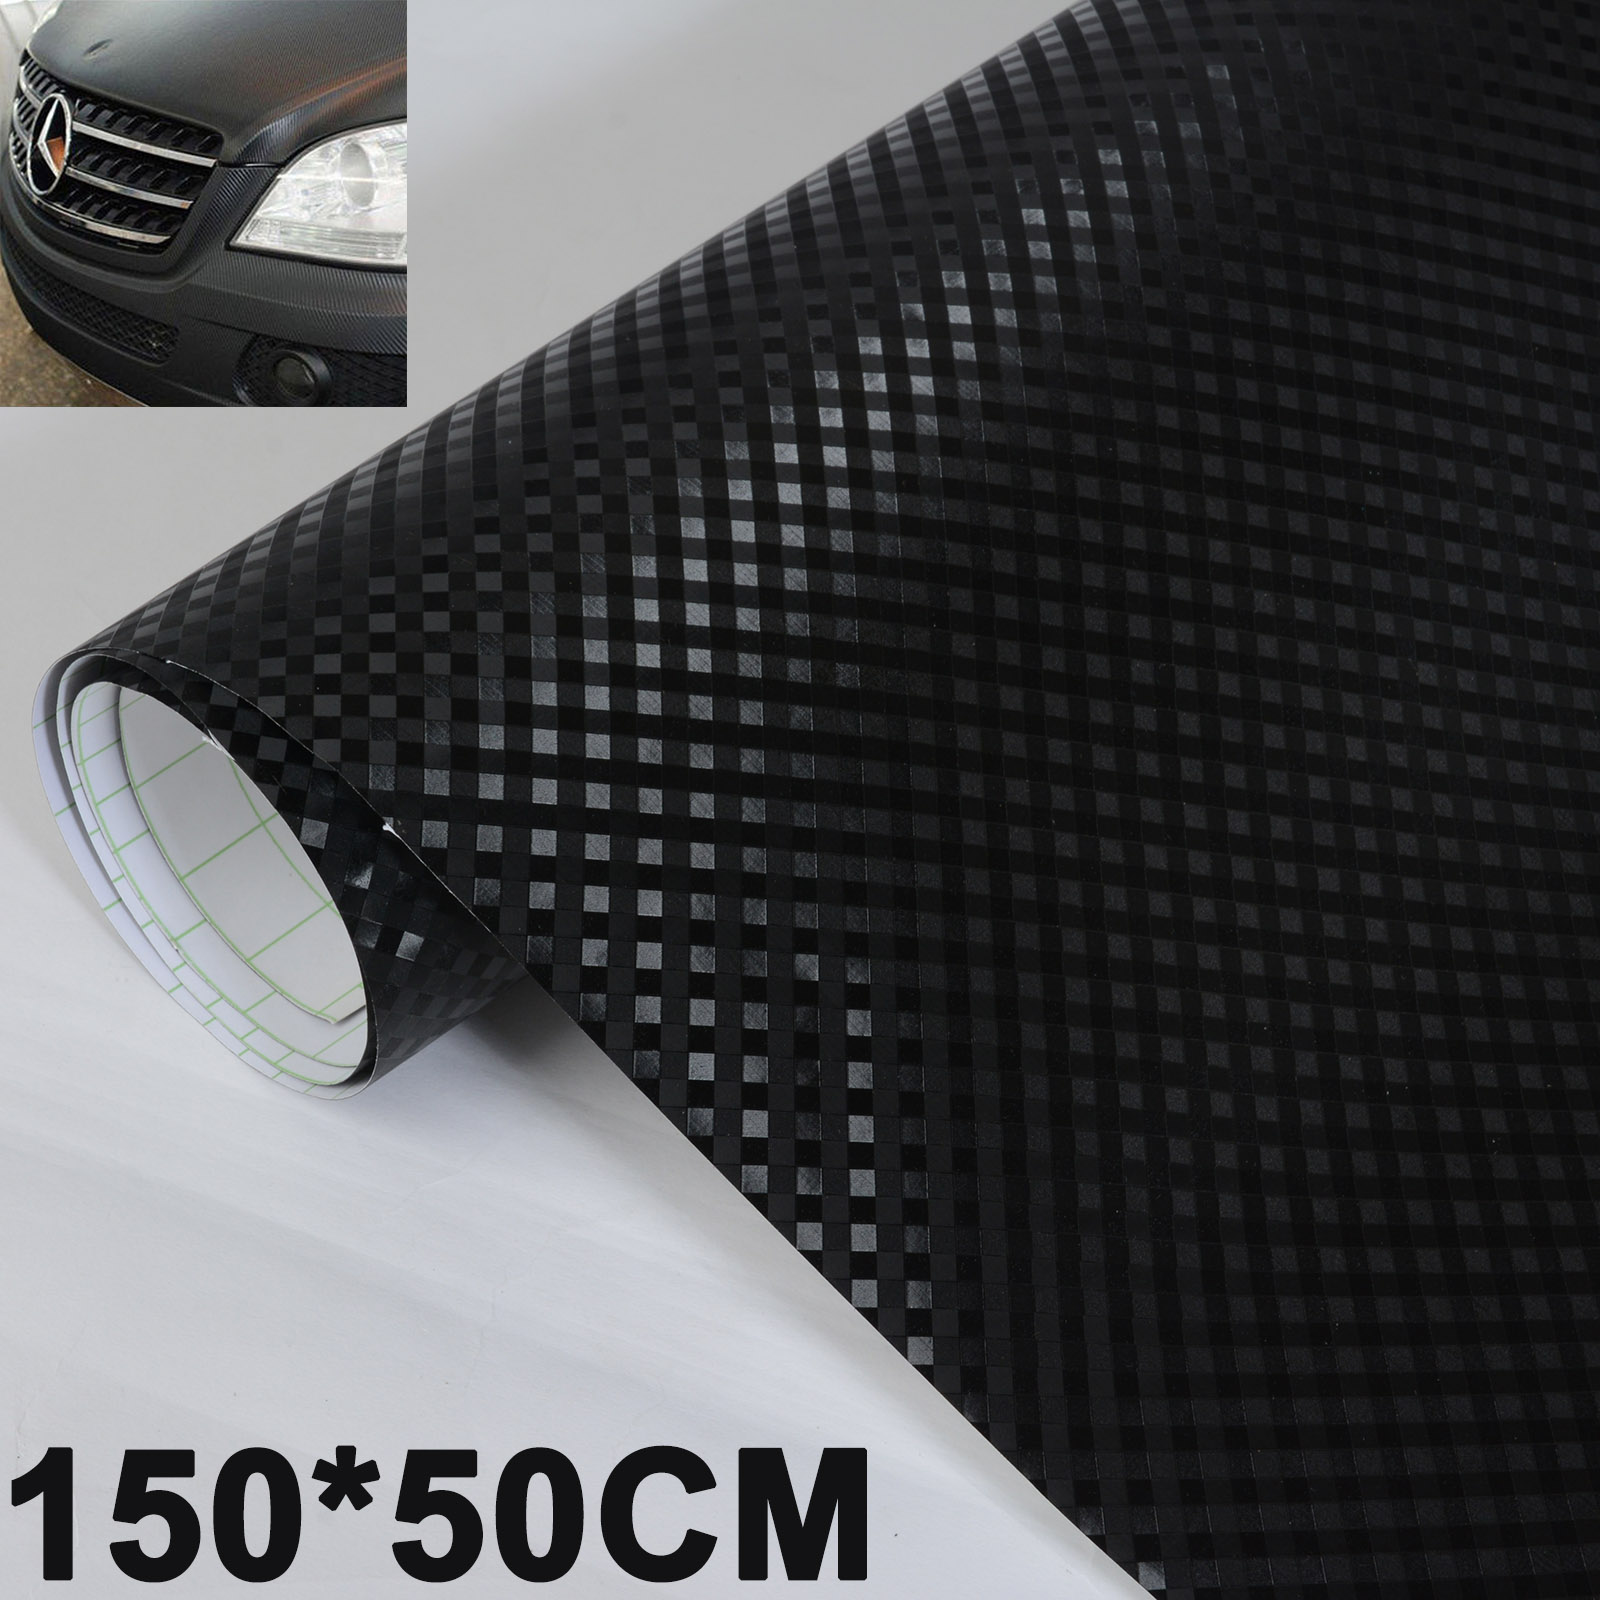 1pc 150*50CM 3D Carbon Fiber Car Vinyl Wrap Sheet Roll Film Decal Cool Black Carbon Fiber sticker for Car Sticker серьги клипсы other 2015 er461 ear cuff